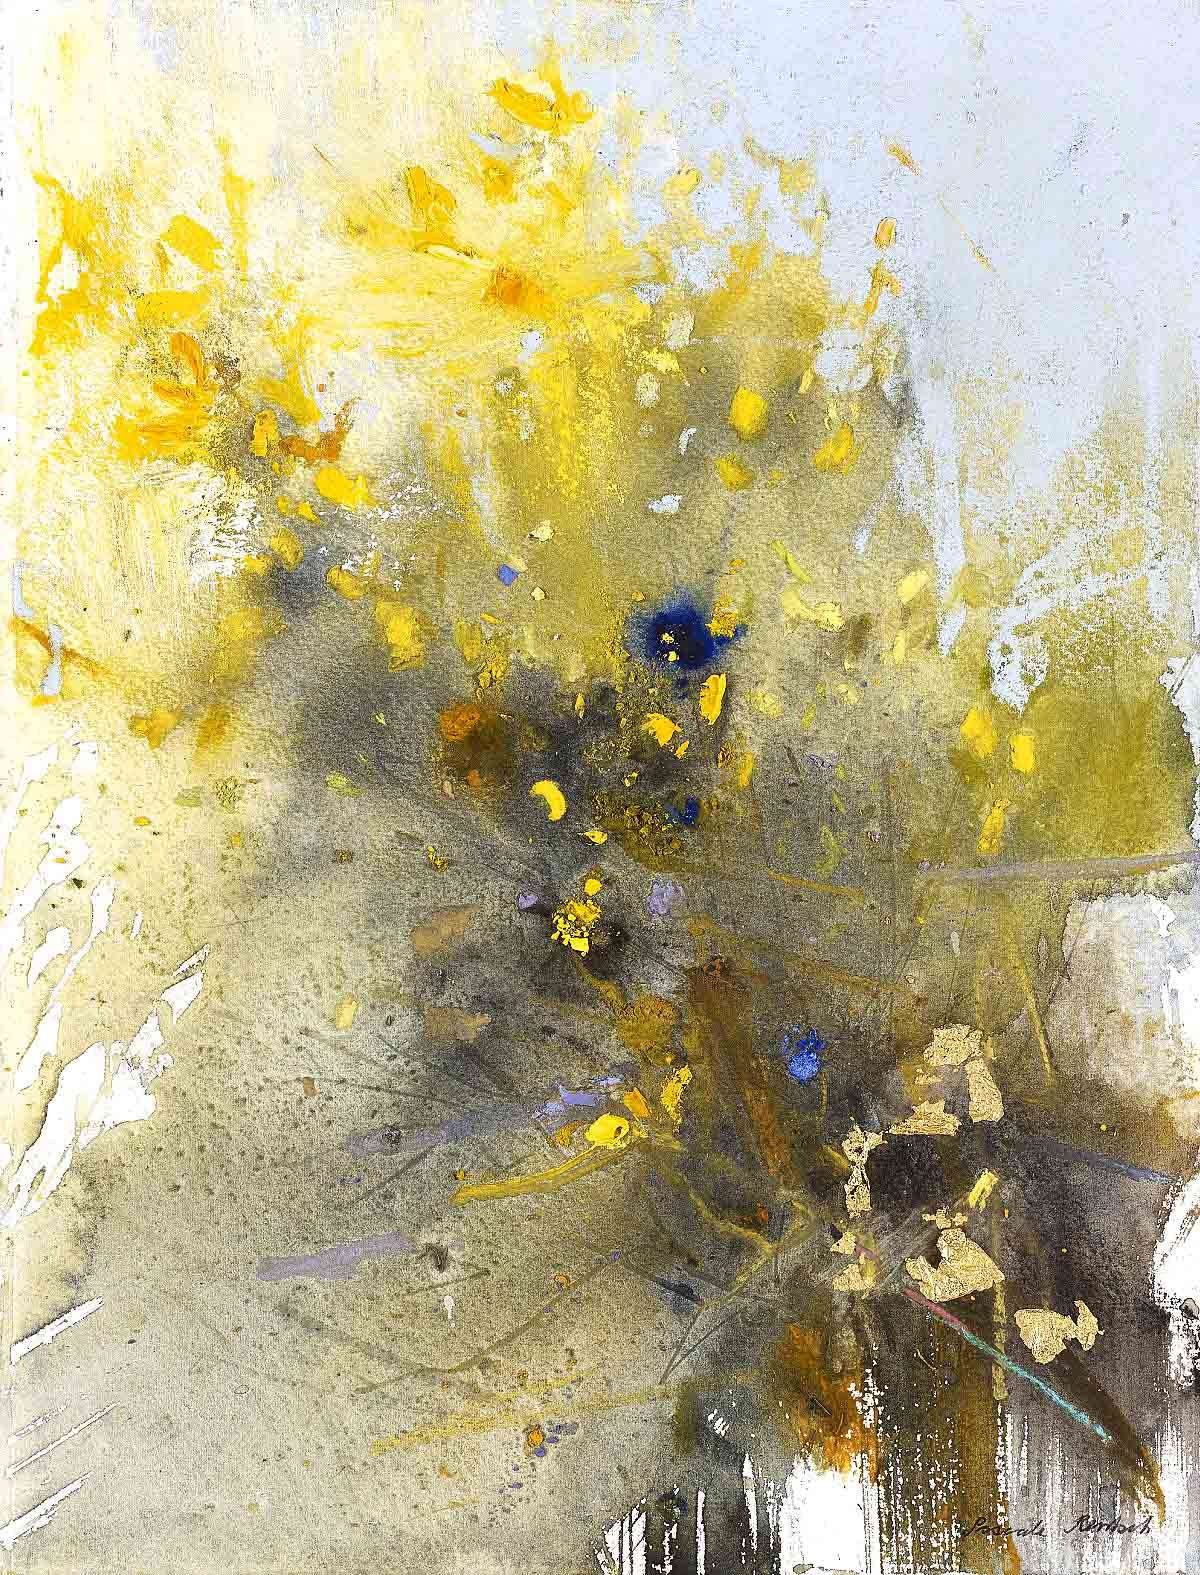 Pascale Rentsch, 'Emerging Colours, Gorse Flowers', gold leaf and mixed media on Canson watercolour paper